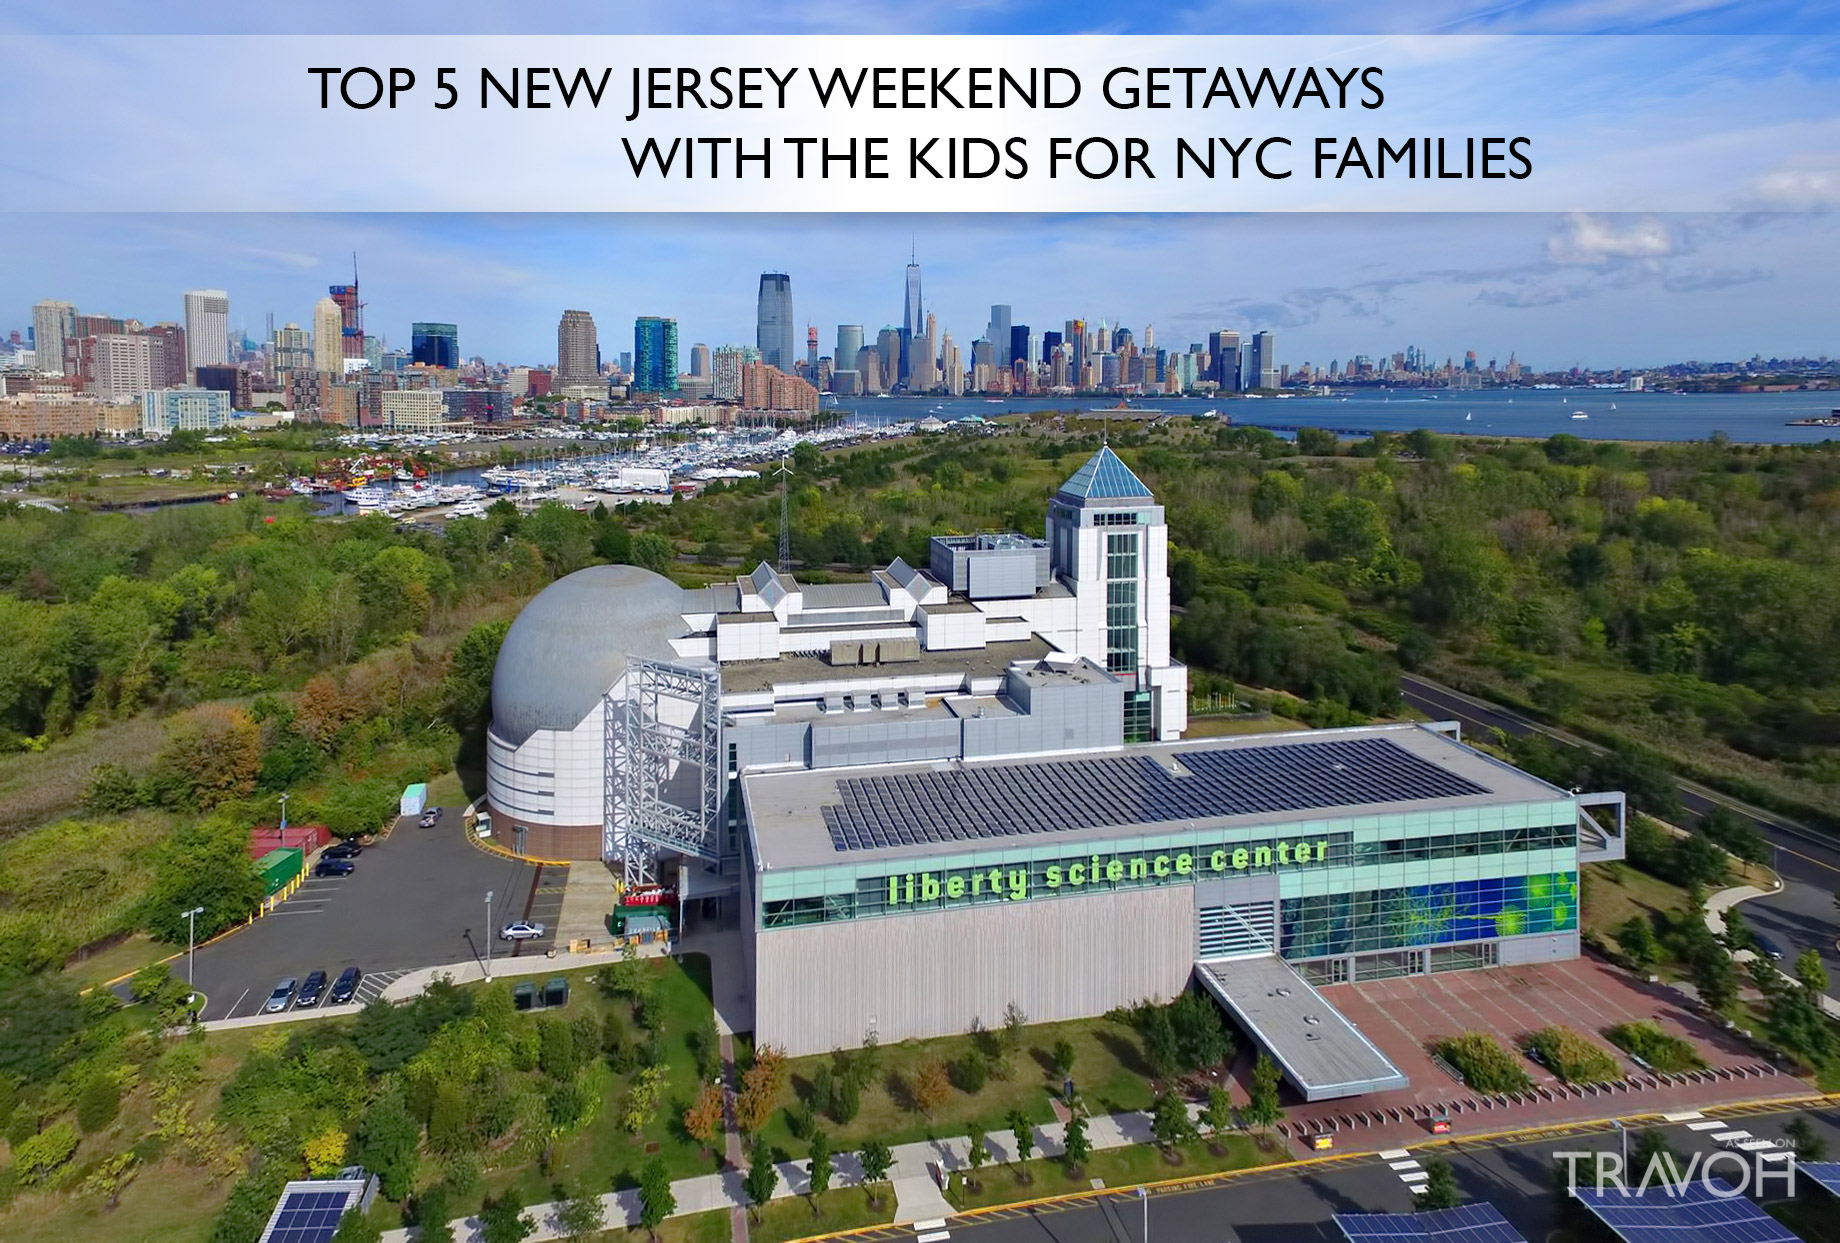 Top 5 new jersey weekend getaways with the kids for nyc for Weekend getaway in nyc